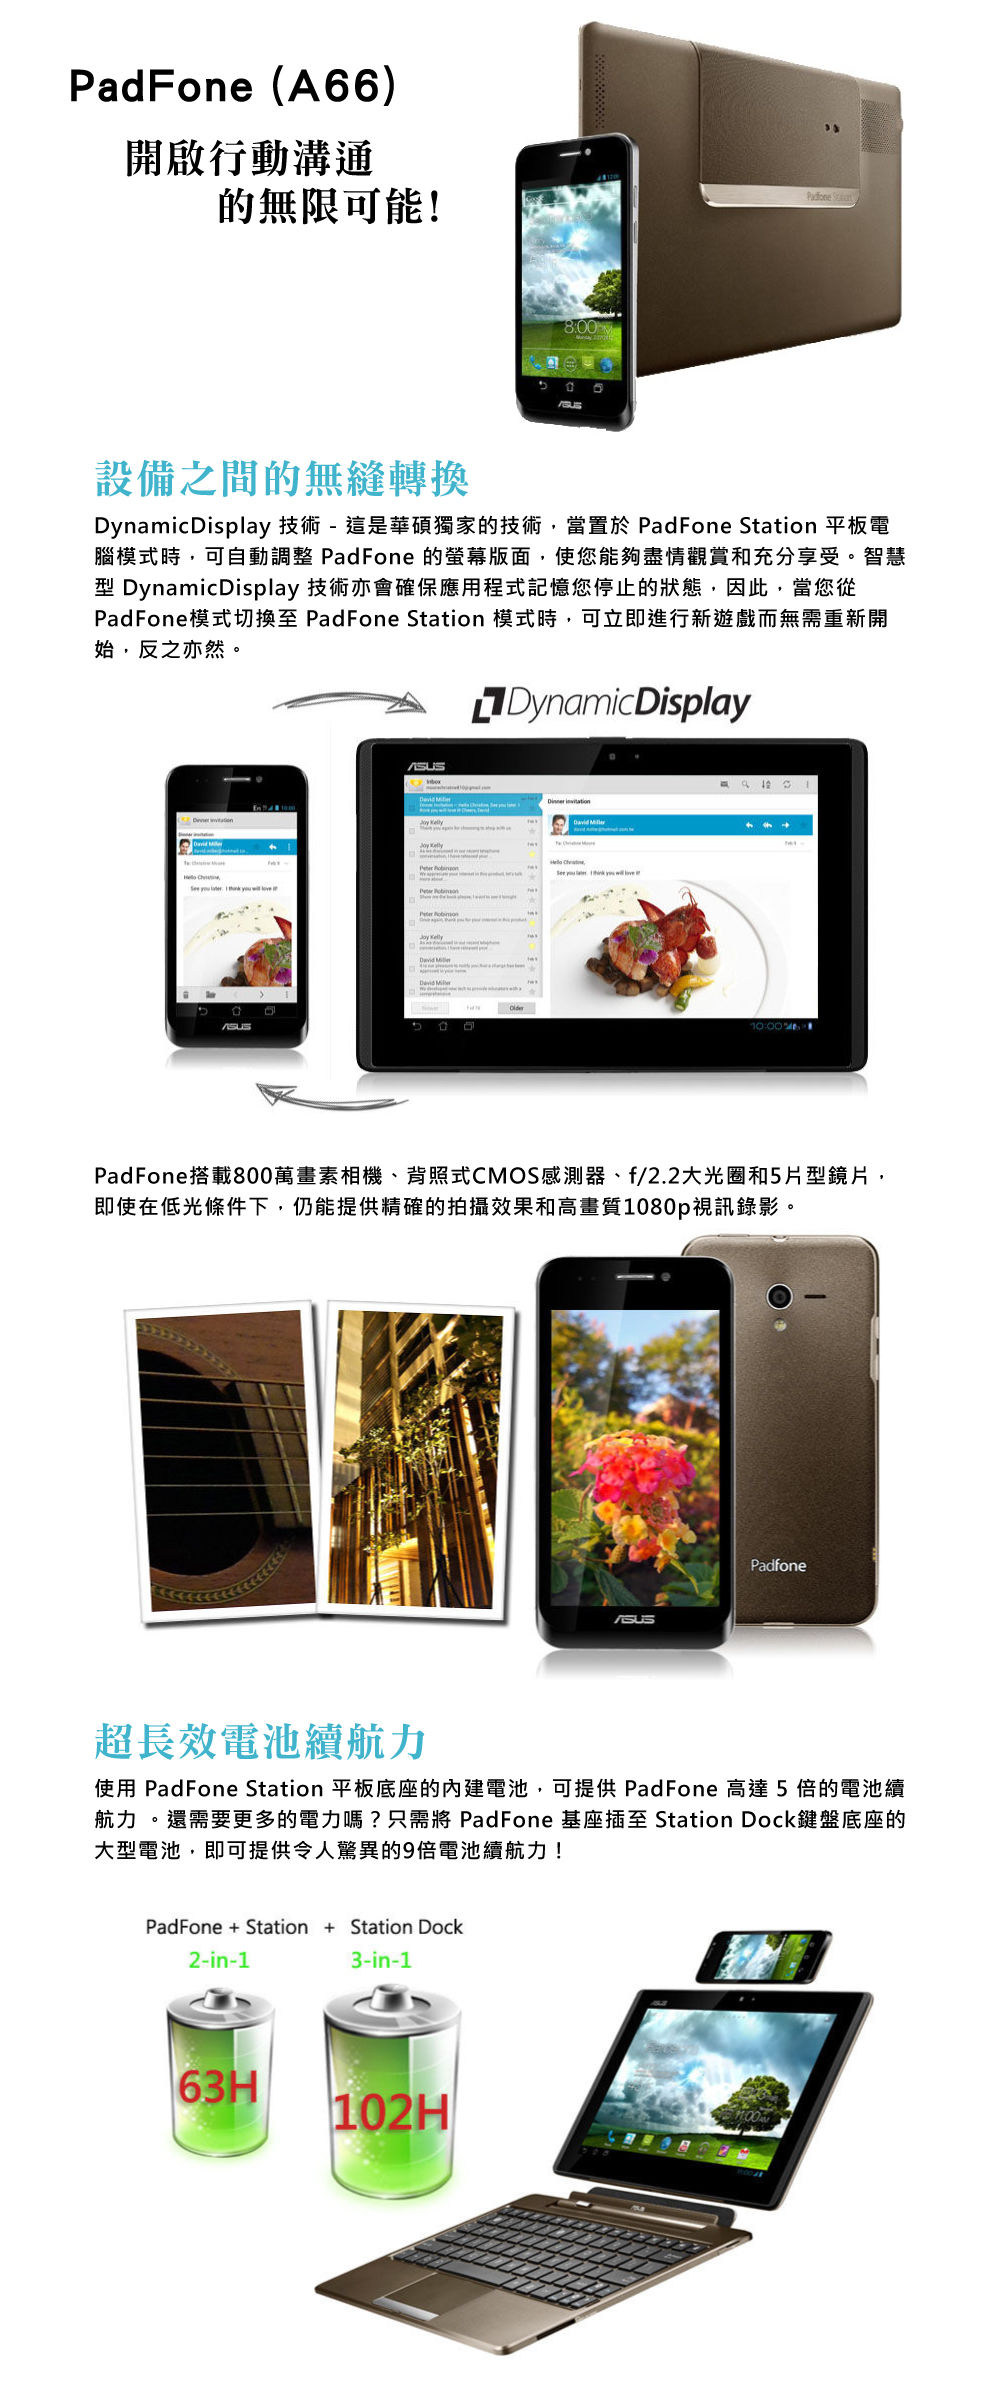 ASUS華碩 PadFone A66 (1G/32G) 智慧手機 華碩 ASUS PadFone A66 32G 變形平板 手機